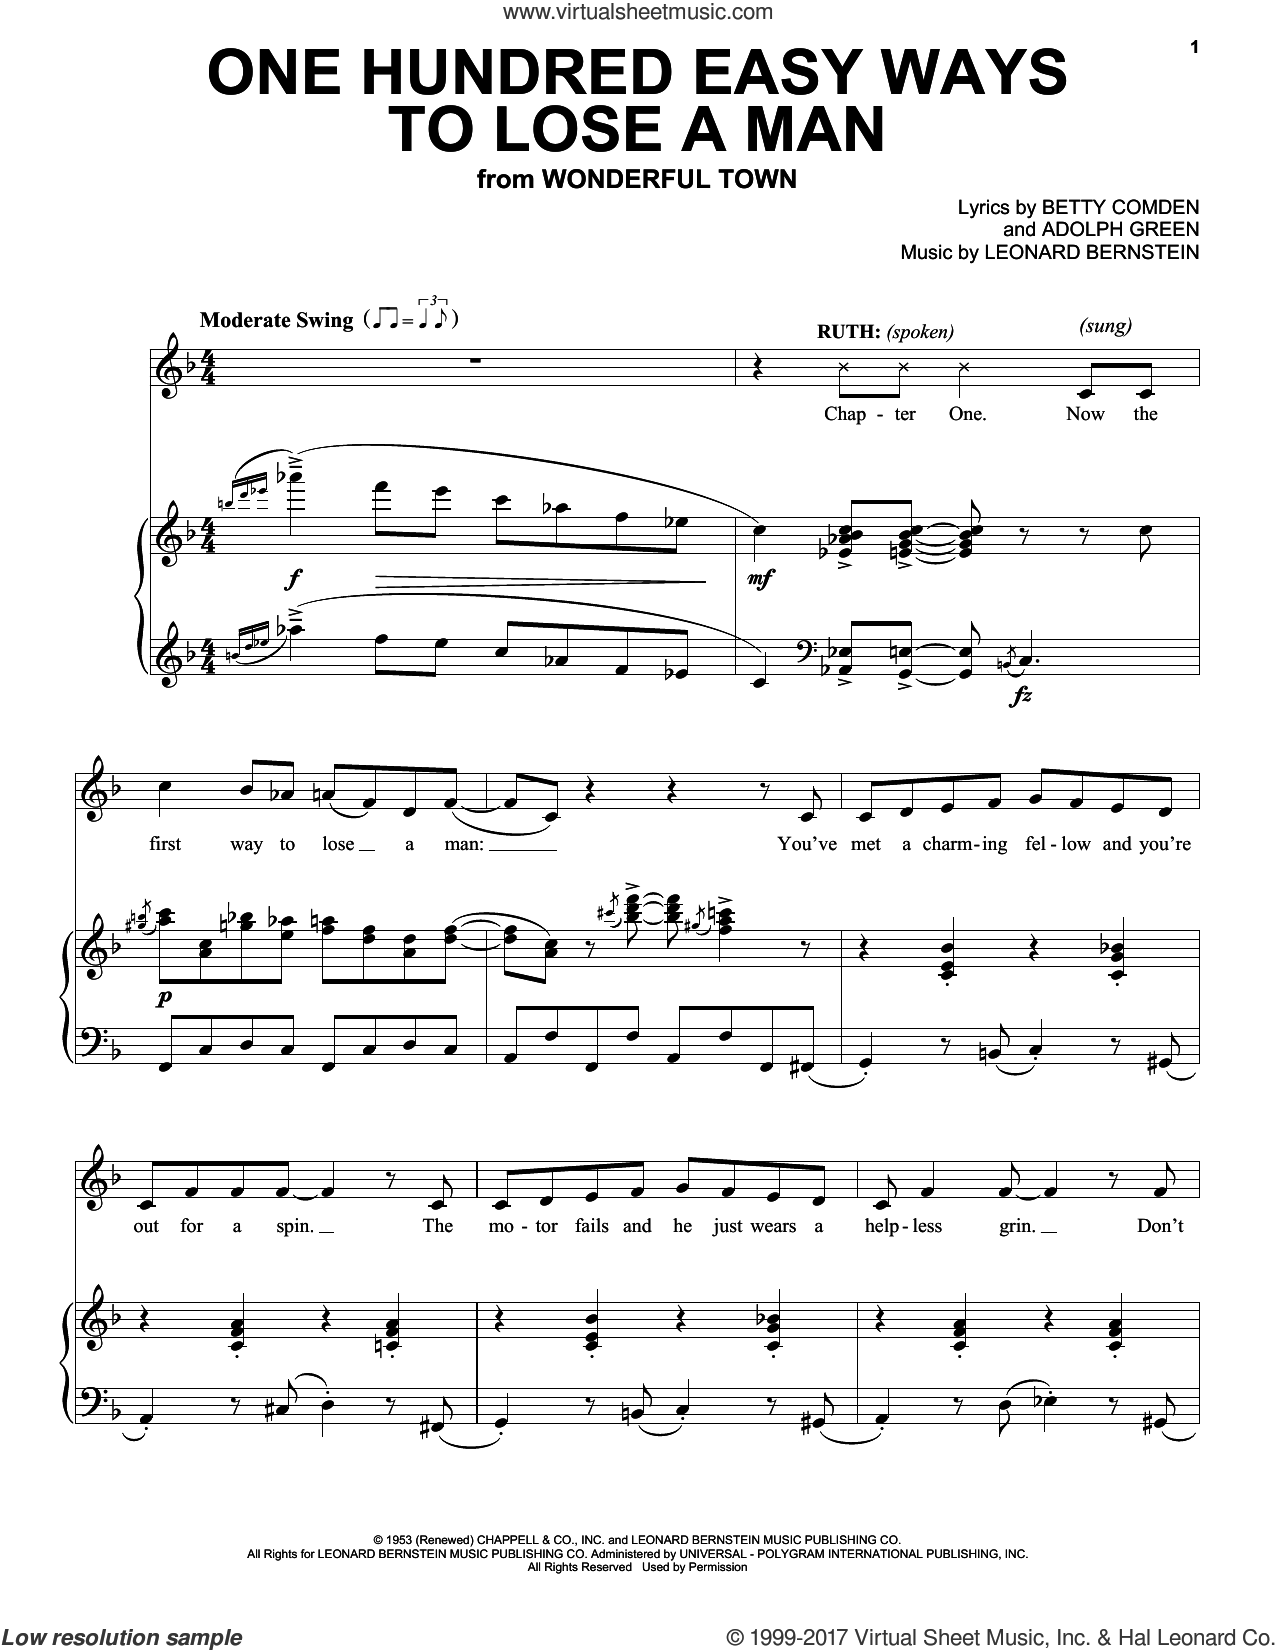 One Hundred Easy Ways To Lose A Man sheet music for voice and piano by Adolph Green, Betty Comden and Leonard Bernstein. Score Image Preview.